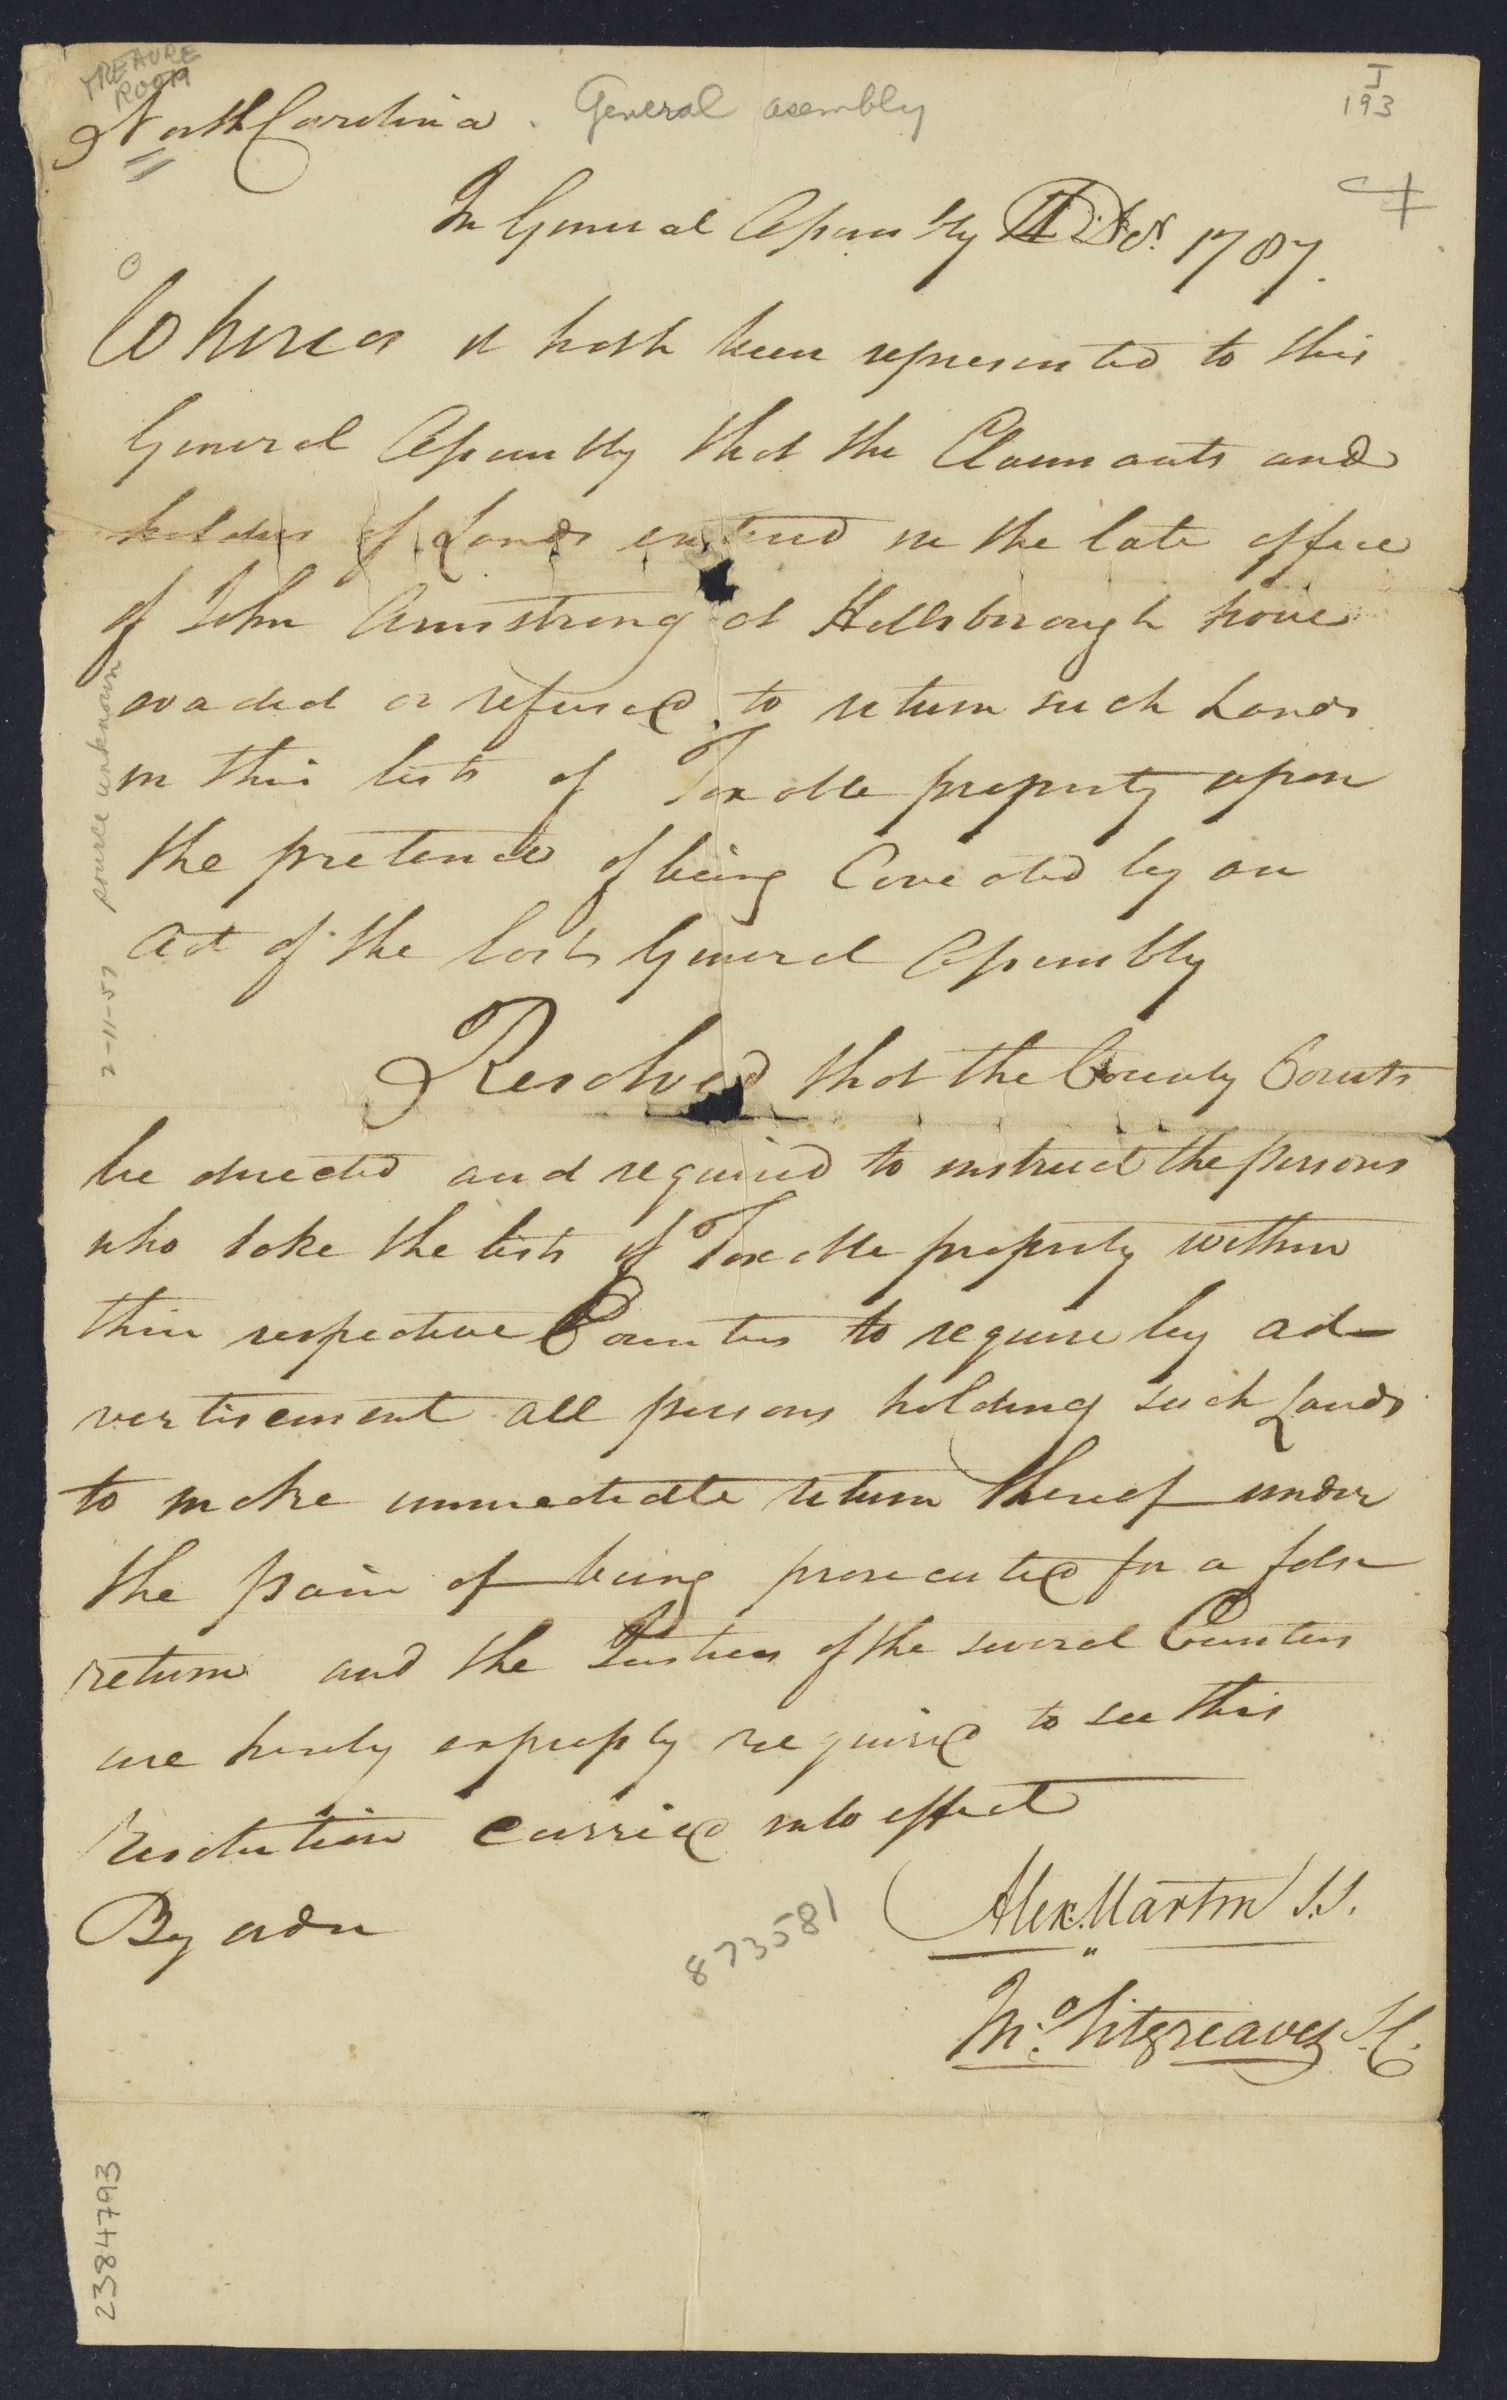 [ Property act], 1787